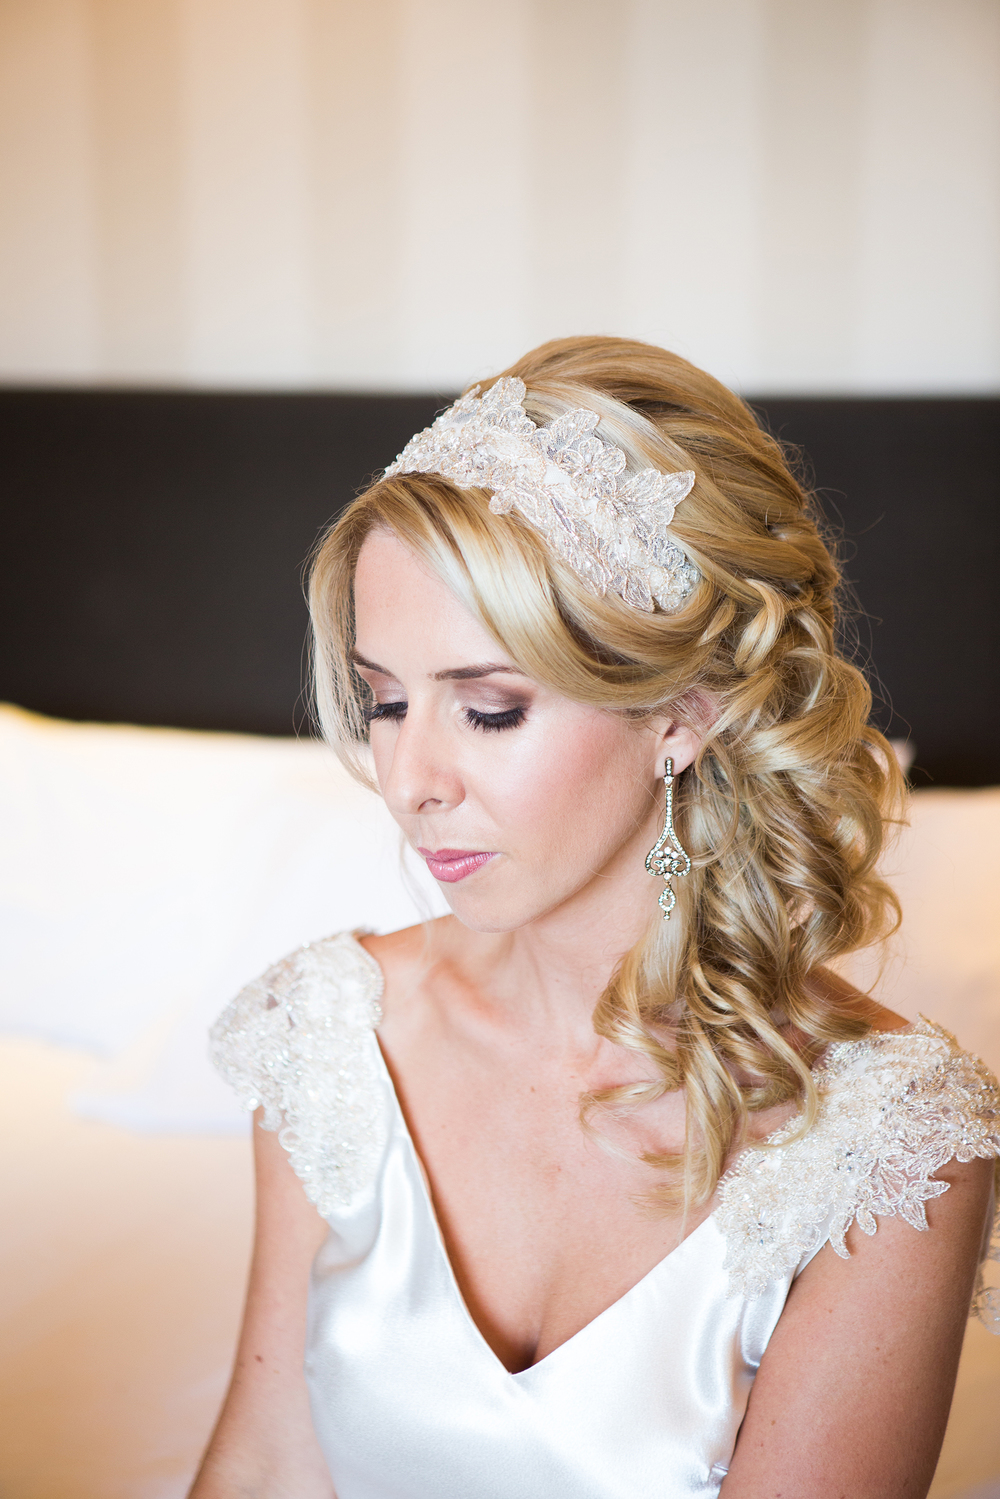 Vintage wedding hairpiece Dress from Astra Bridal | Photography Kirsty and Grant Photography | www.borrowedandblue.kiwi